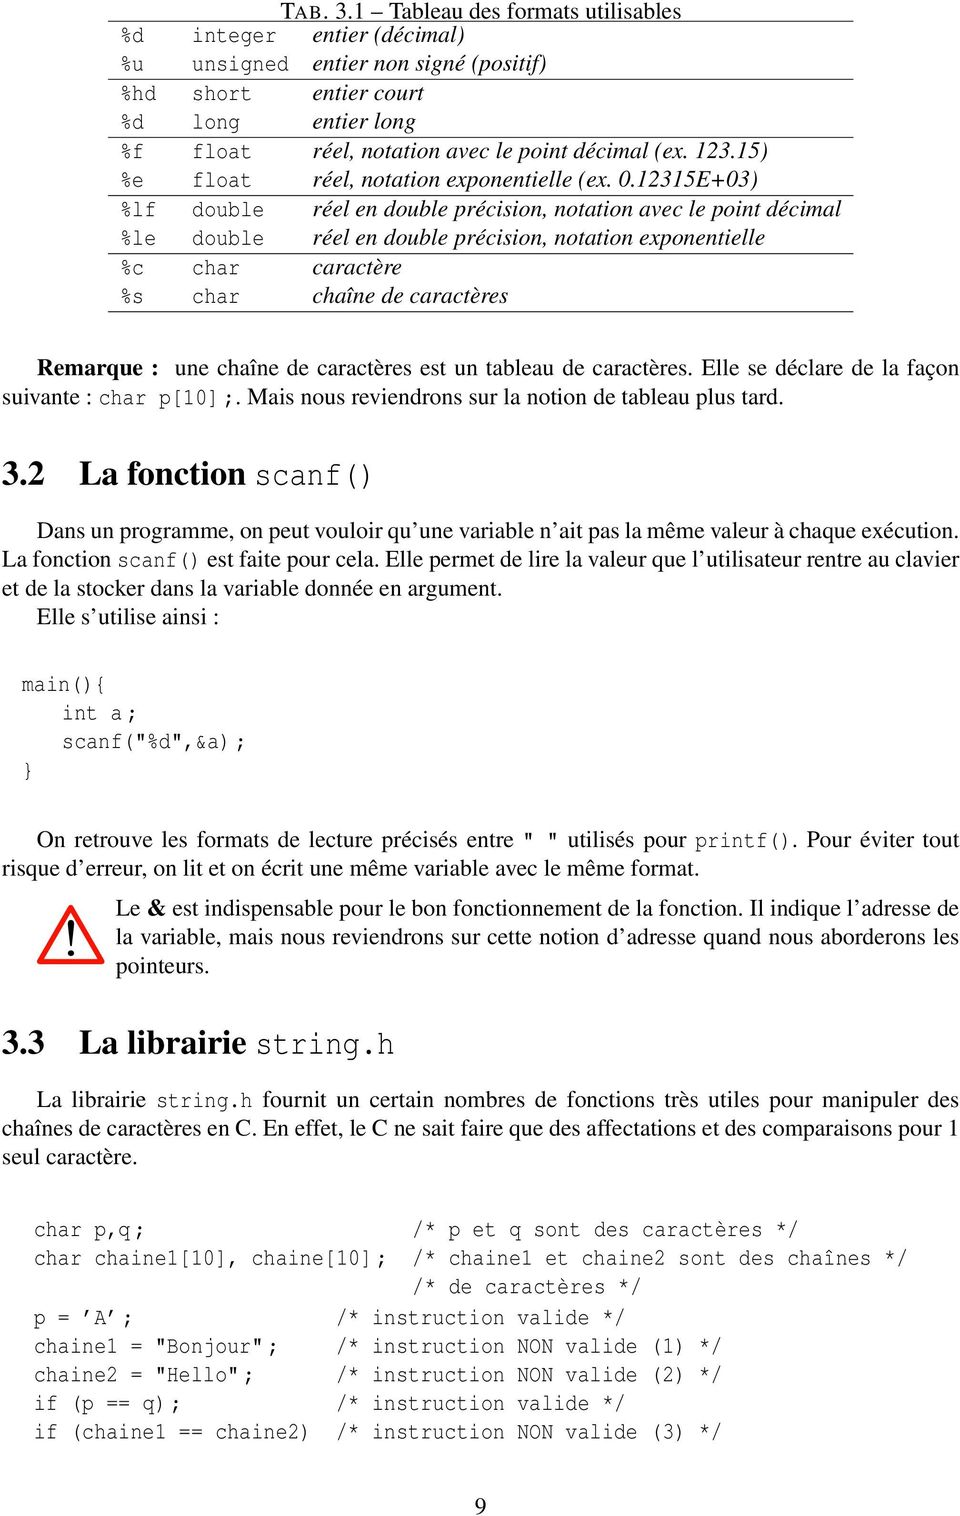 15) %e float réel, notation exponentielle (ex. 0.